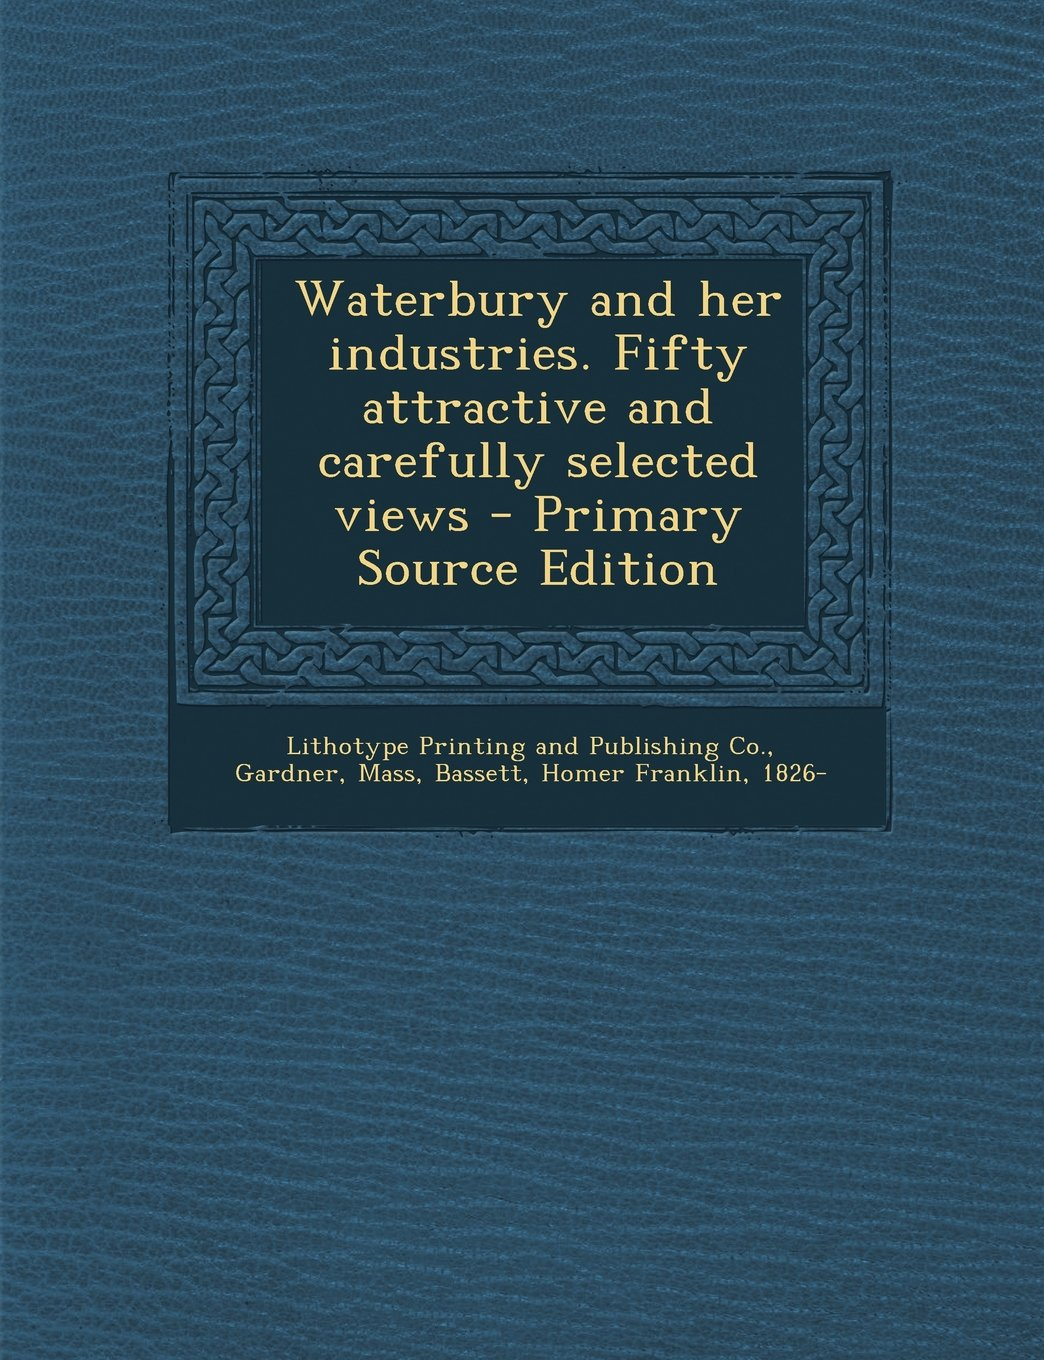 Download Waterbury and her industries. Fifty attractive and carefully selected views - Primary Source Edition ebook